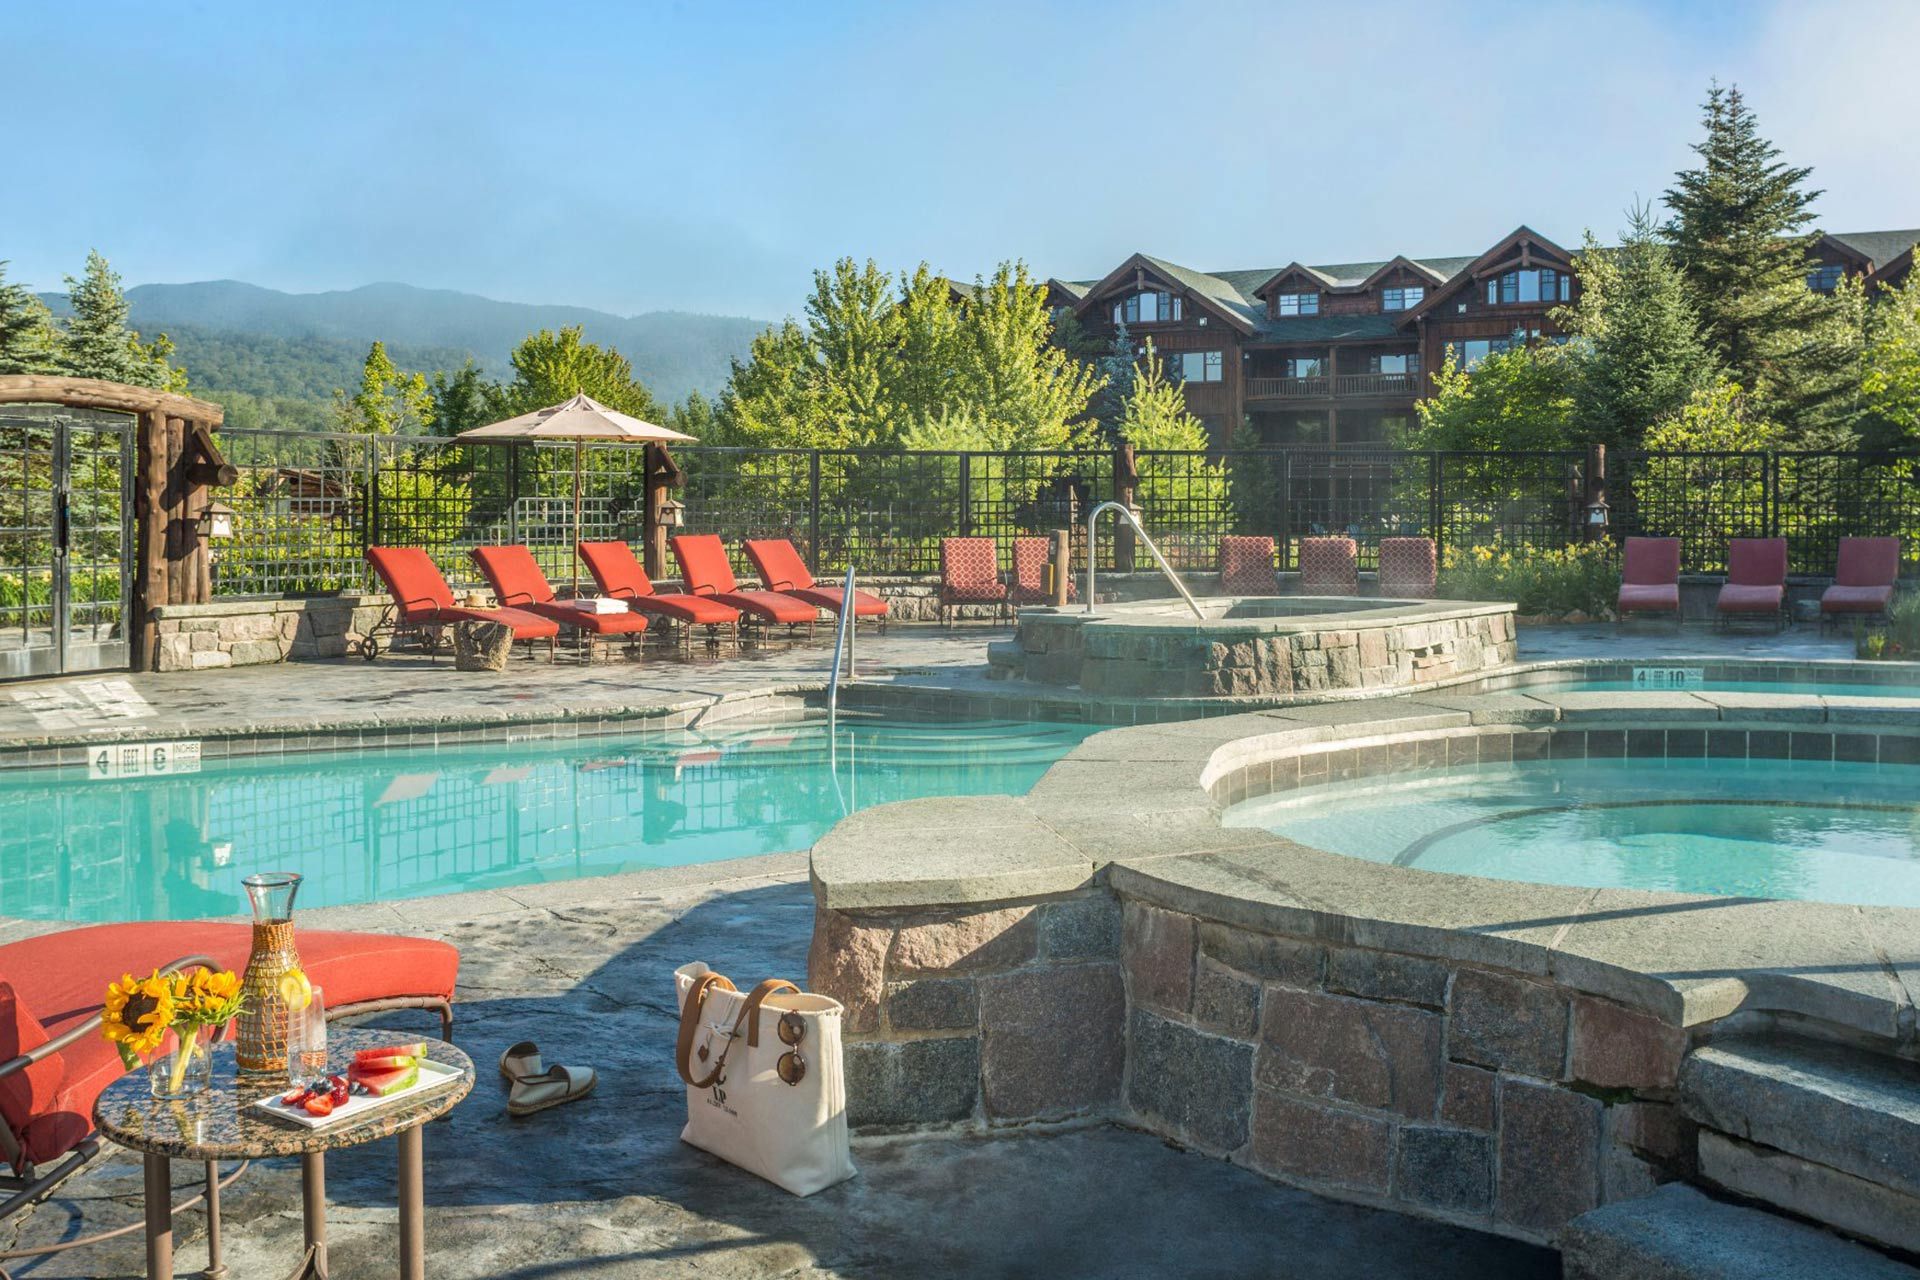 Whiteface Lodge in Lake Placid, New York